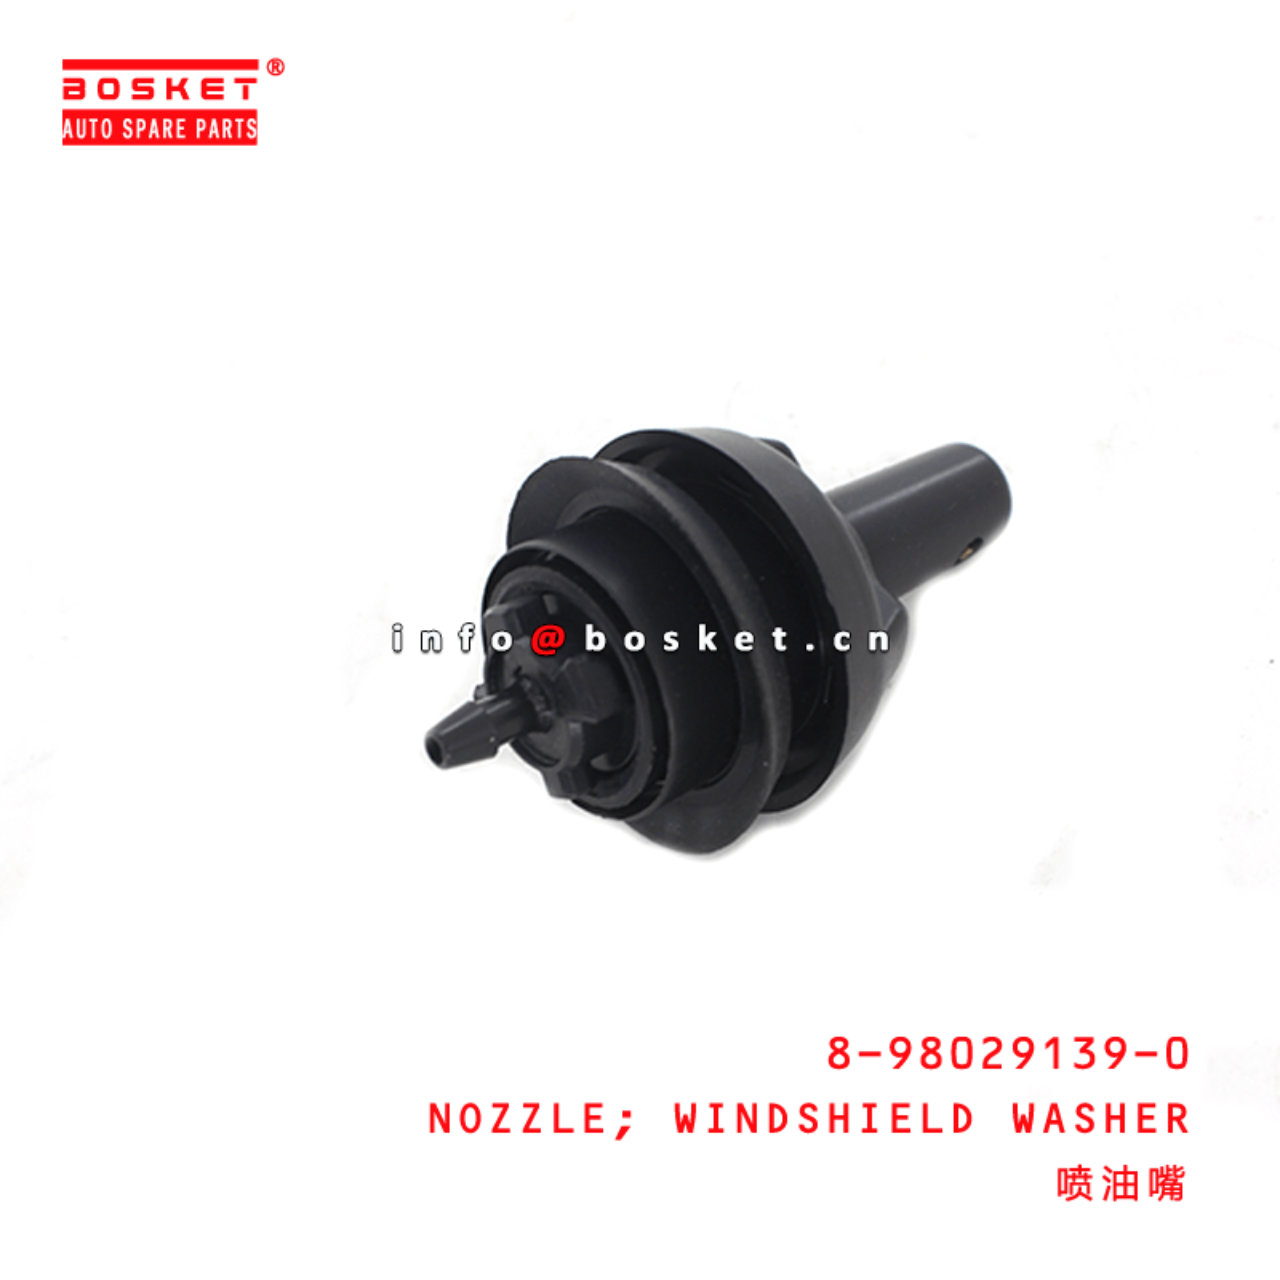 8-98029139-0 Windshield Washer Nozzle 8980291390 Suitable for ISUZU NLR NMR55 85